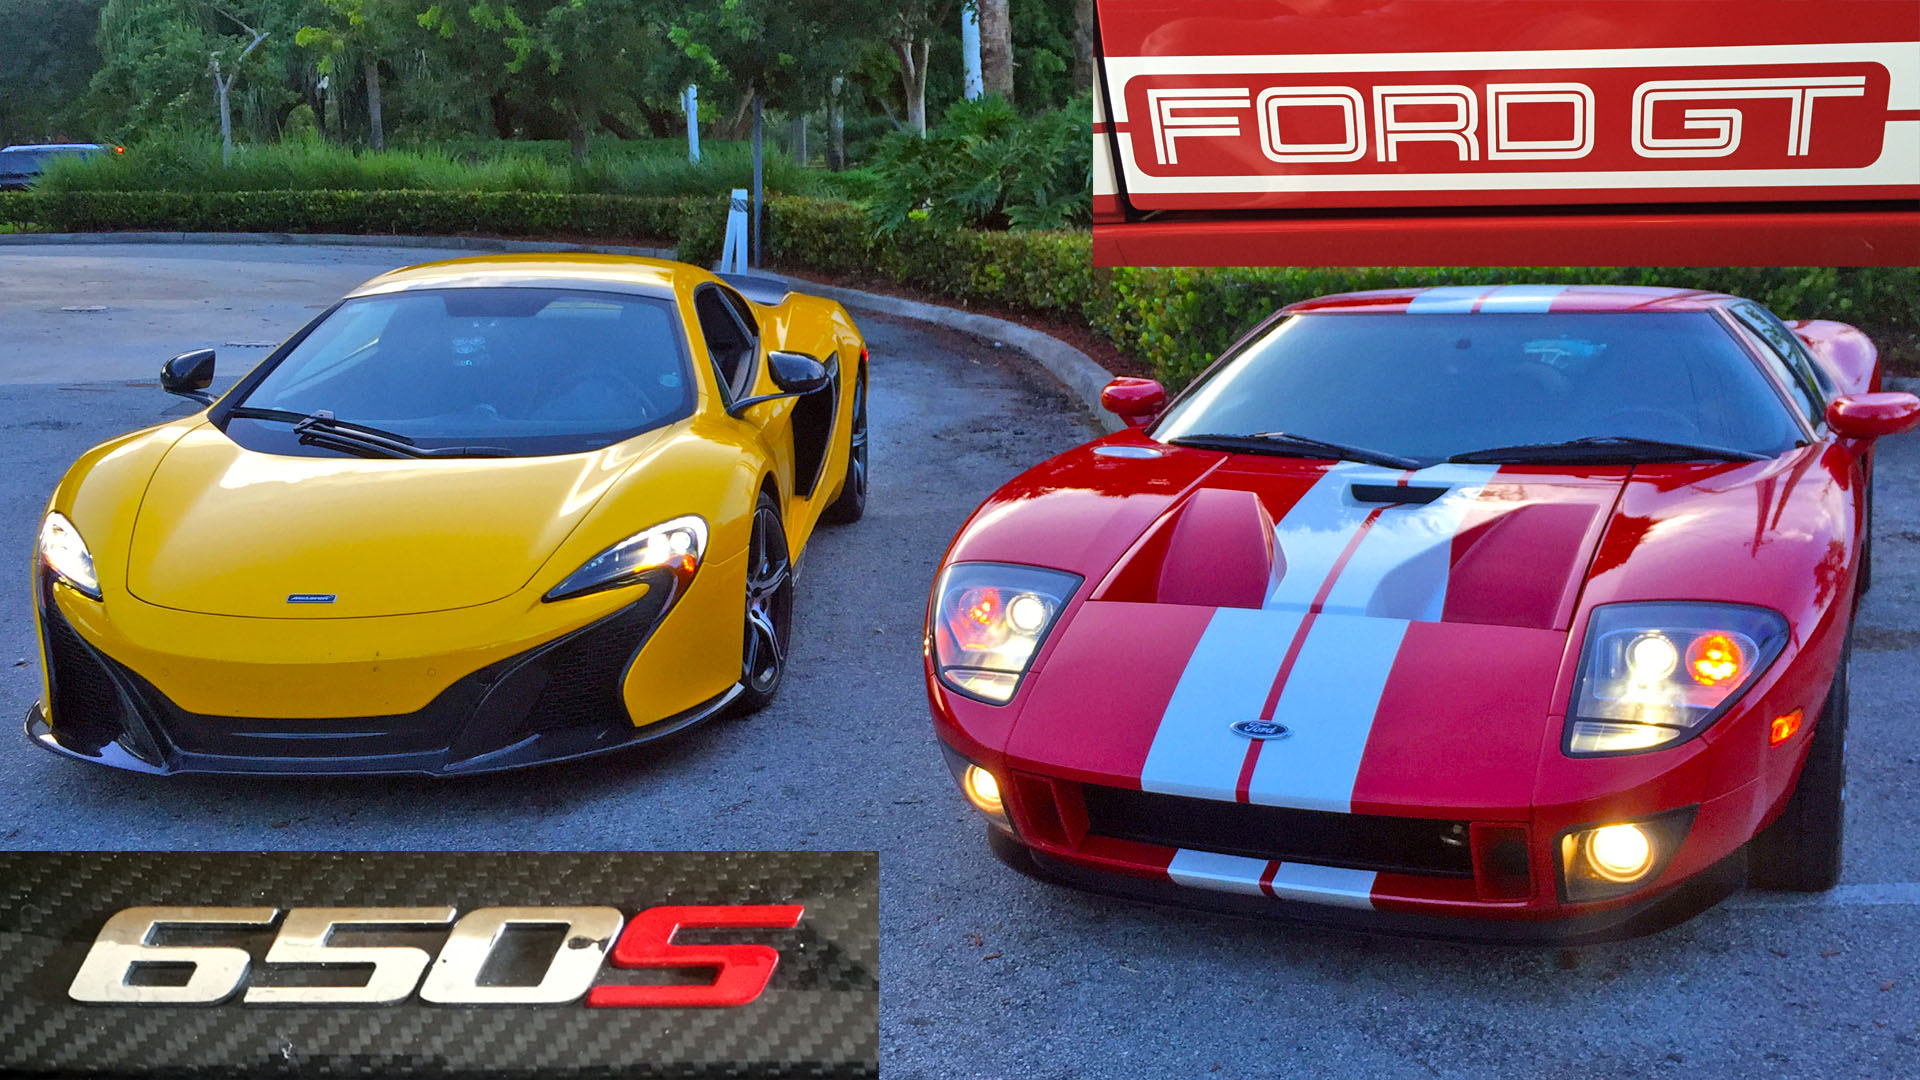 700HP Ford GT races 641HP McLaren 650S